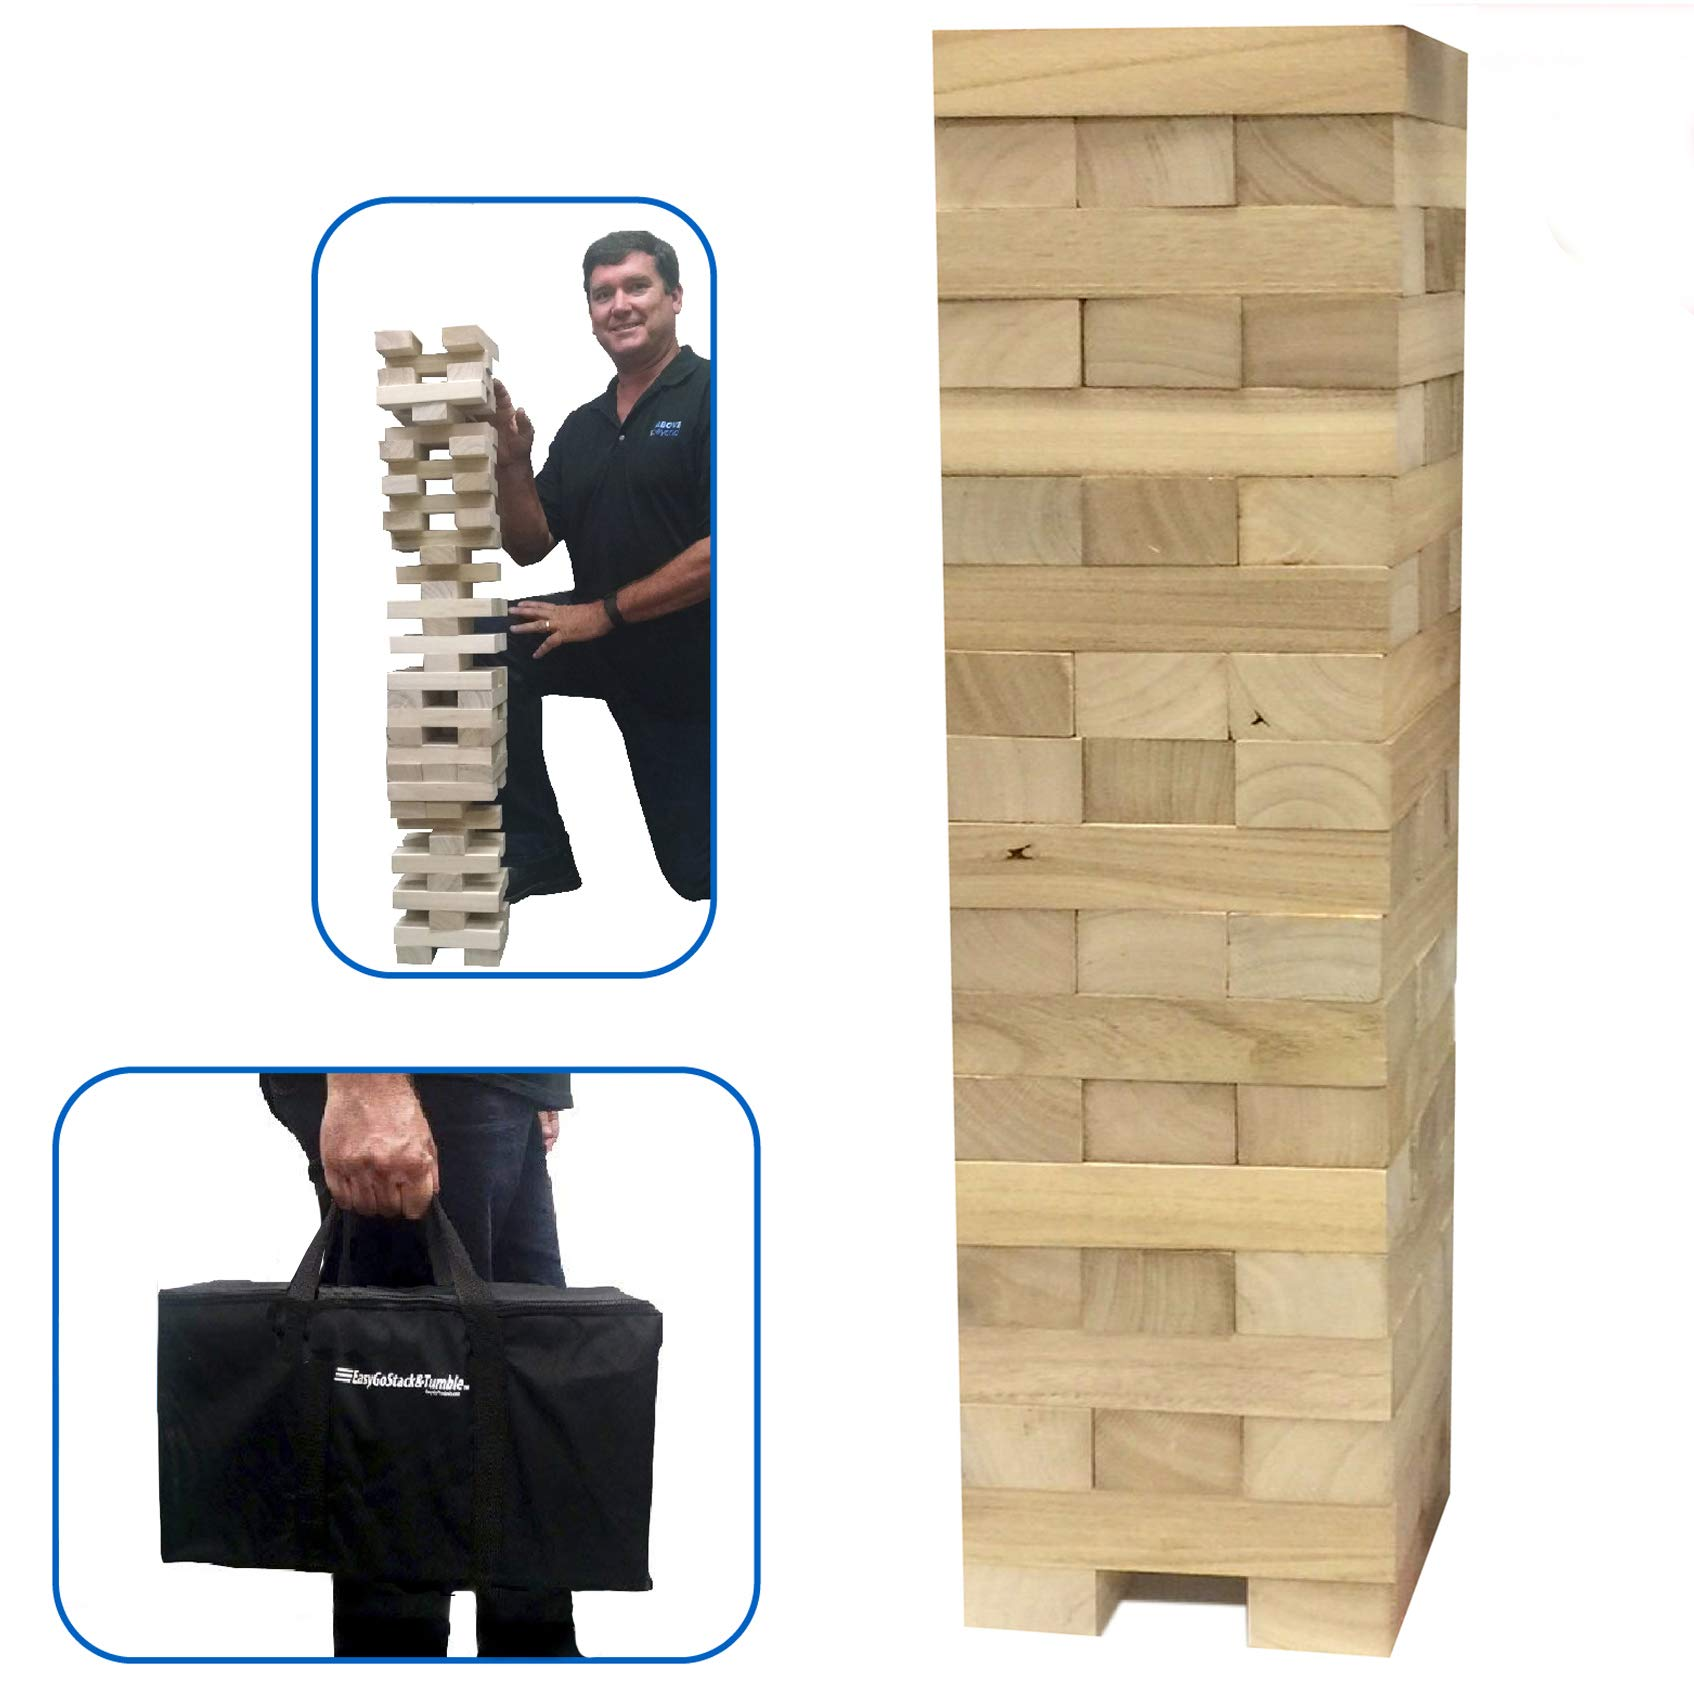 EasyGoProducts 54Piece Giant Wood Block Stack & Tumble Tower Toppling Blocks Game- Great for Game Nights for Kids, Adults & Family -Storage Bag by EasyGoProducts